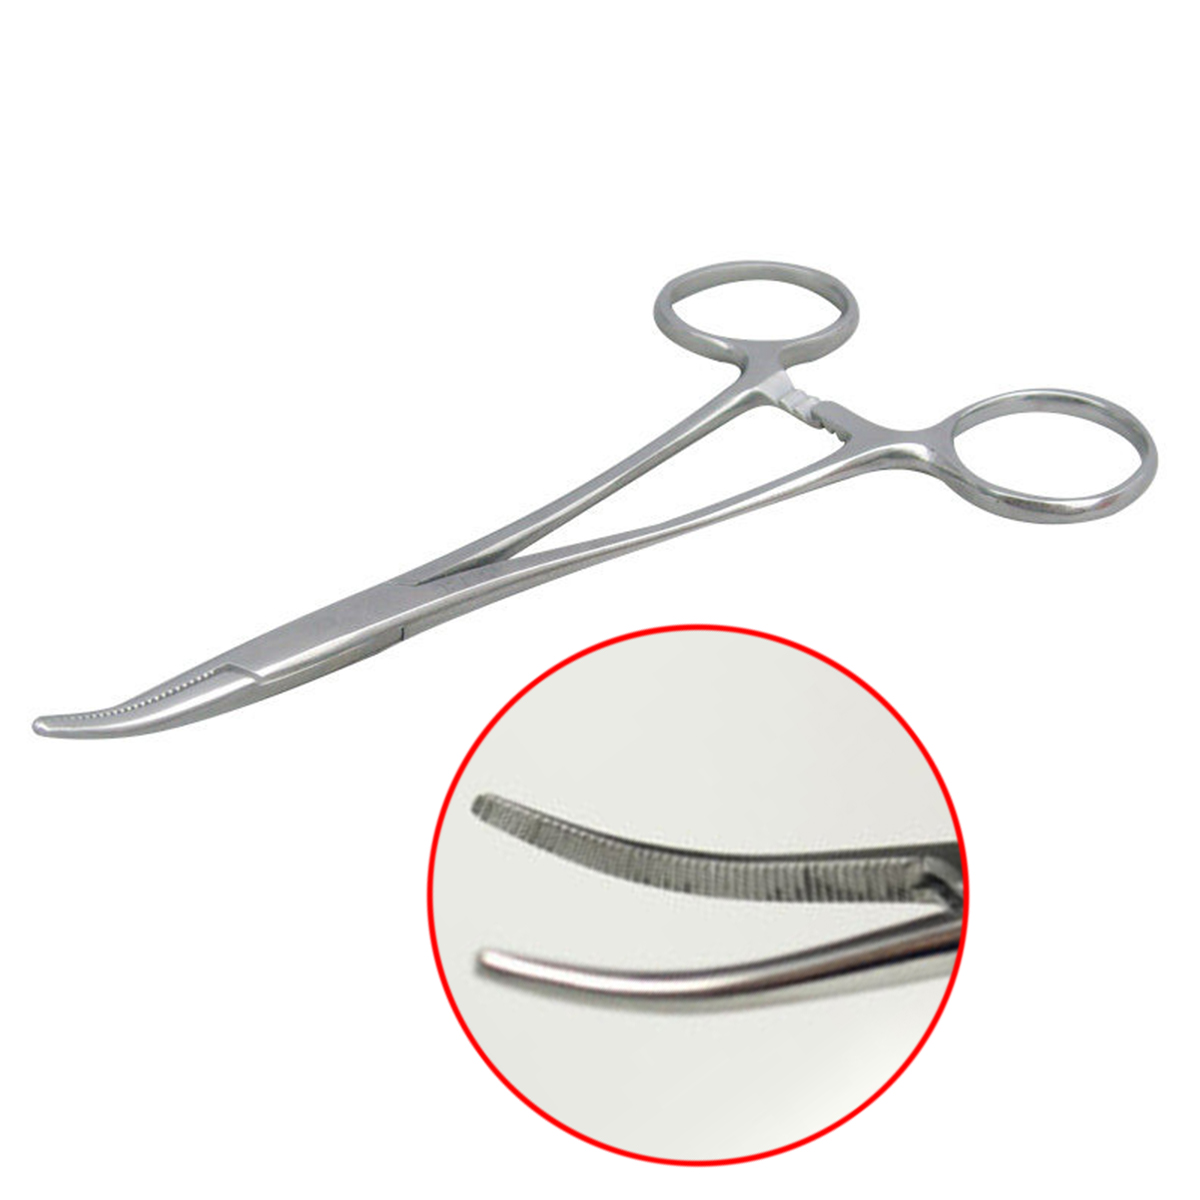 Stainless Steel Fishing Curved Tip Hemostat 12.5cm Haemostatic Locking Clamps Forceps Scissors Pliers Mayitr